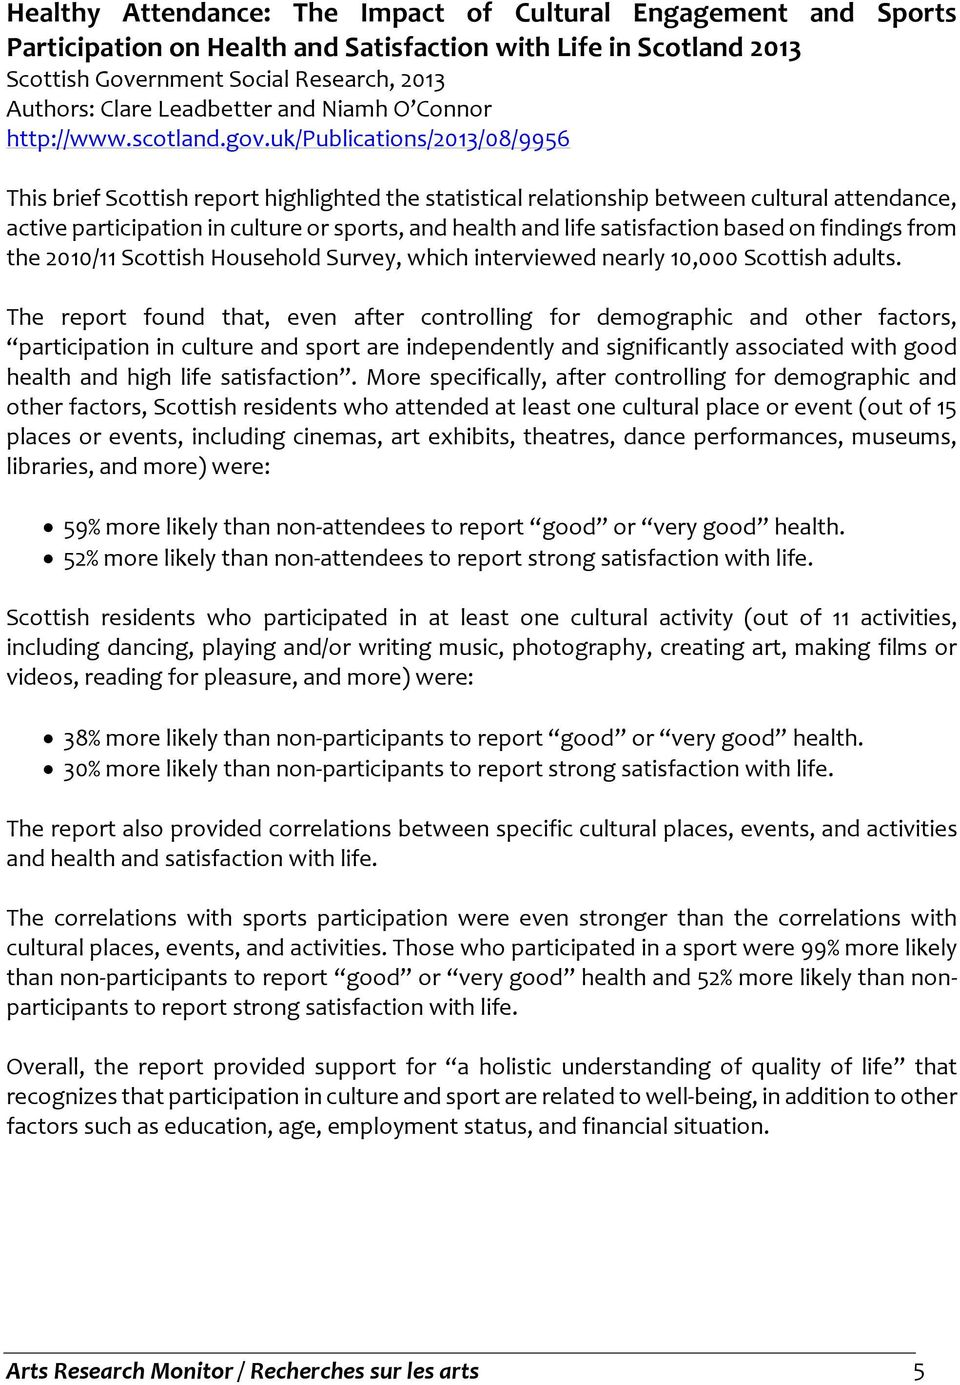 uk/publications/2013/08/9956 This brief Scottish report highlighted the statistical relationship between cultural attendance, active participation in culture or sports, and health and life